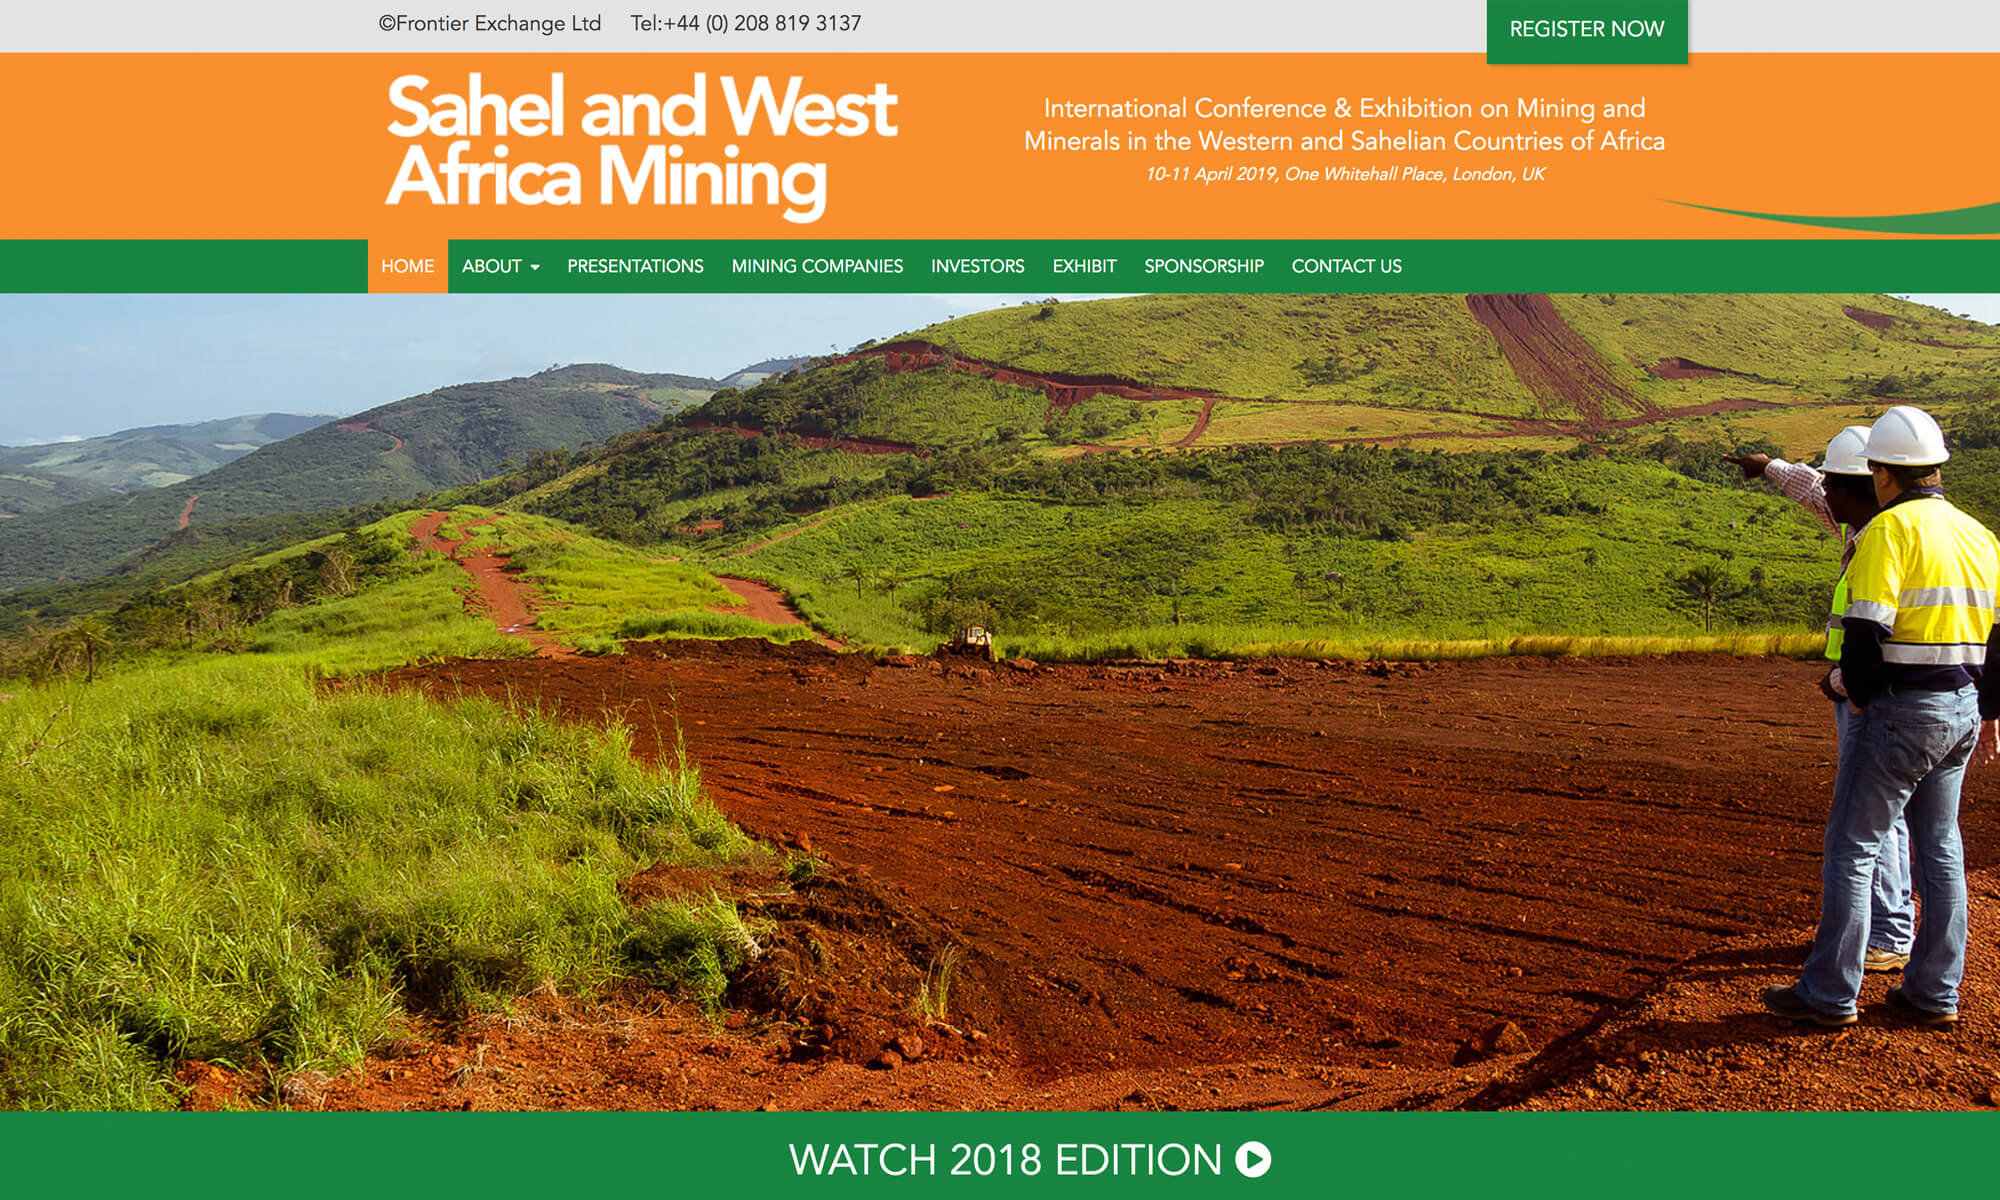 Sahel Mining Website Design Boca